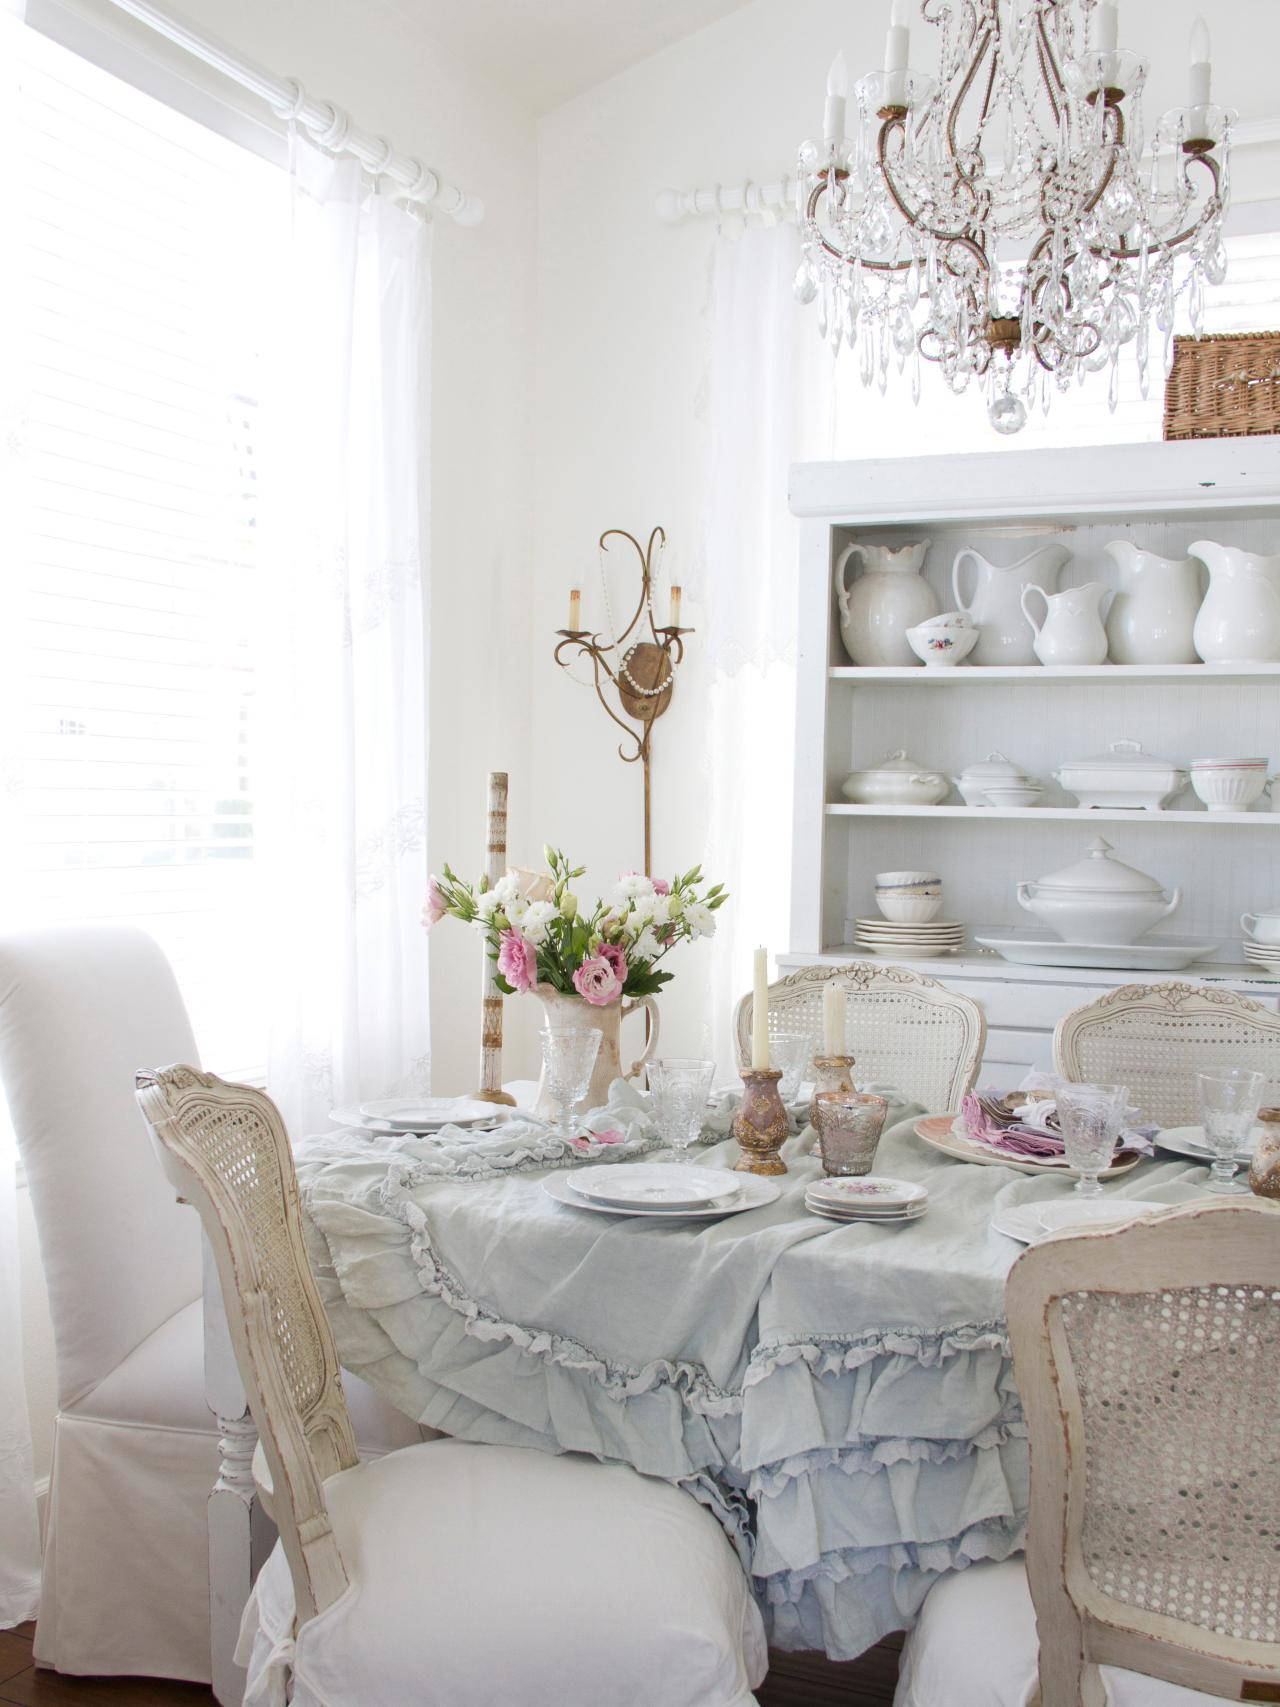 Shabby chic decor home decor accessories furniture for Dining room decor accessories